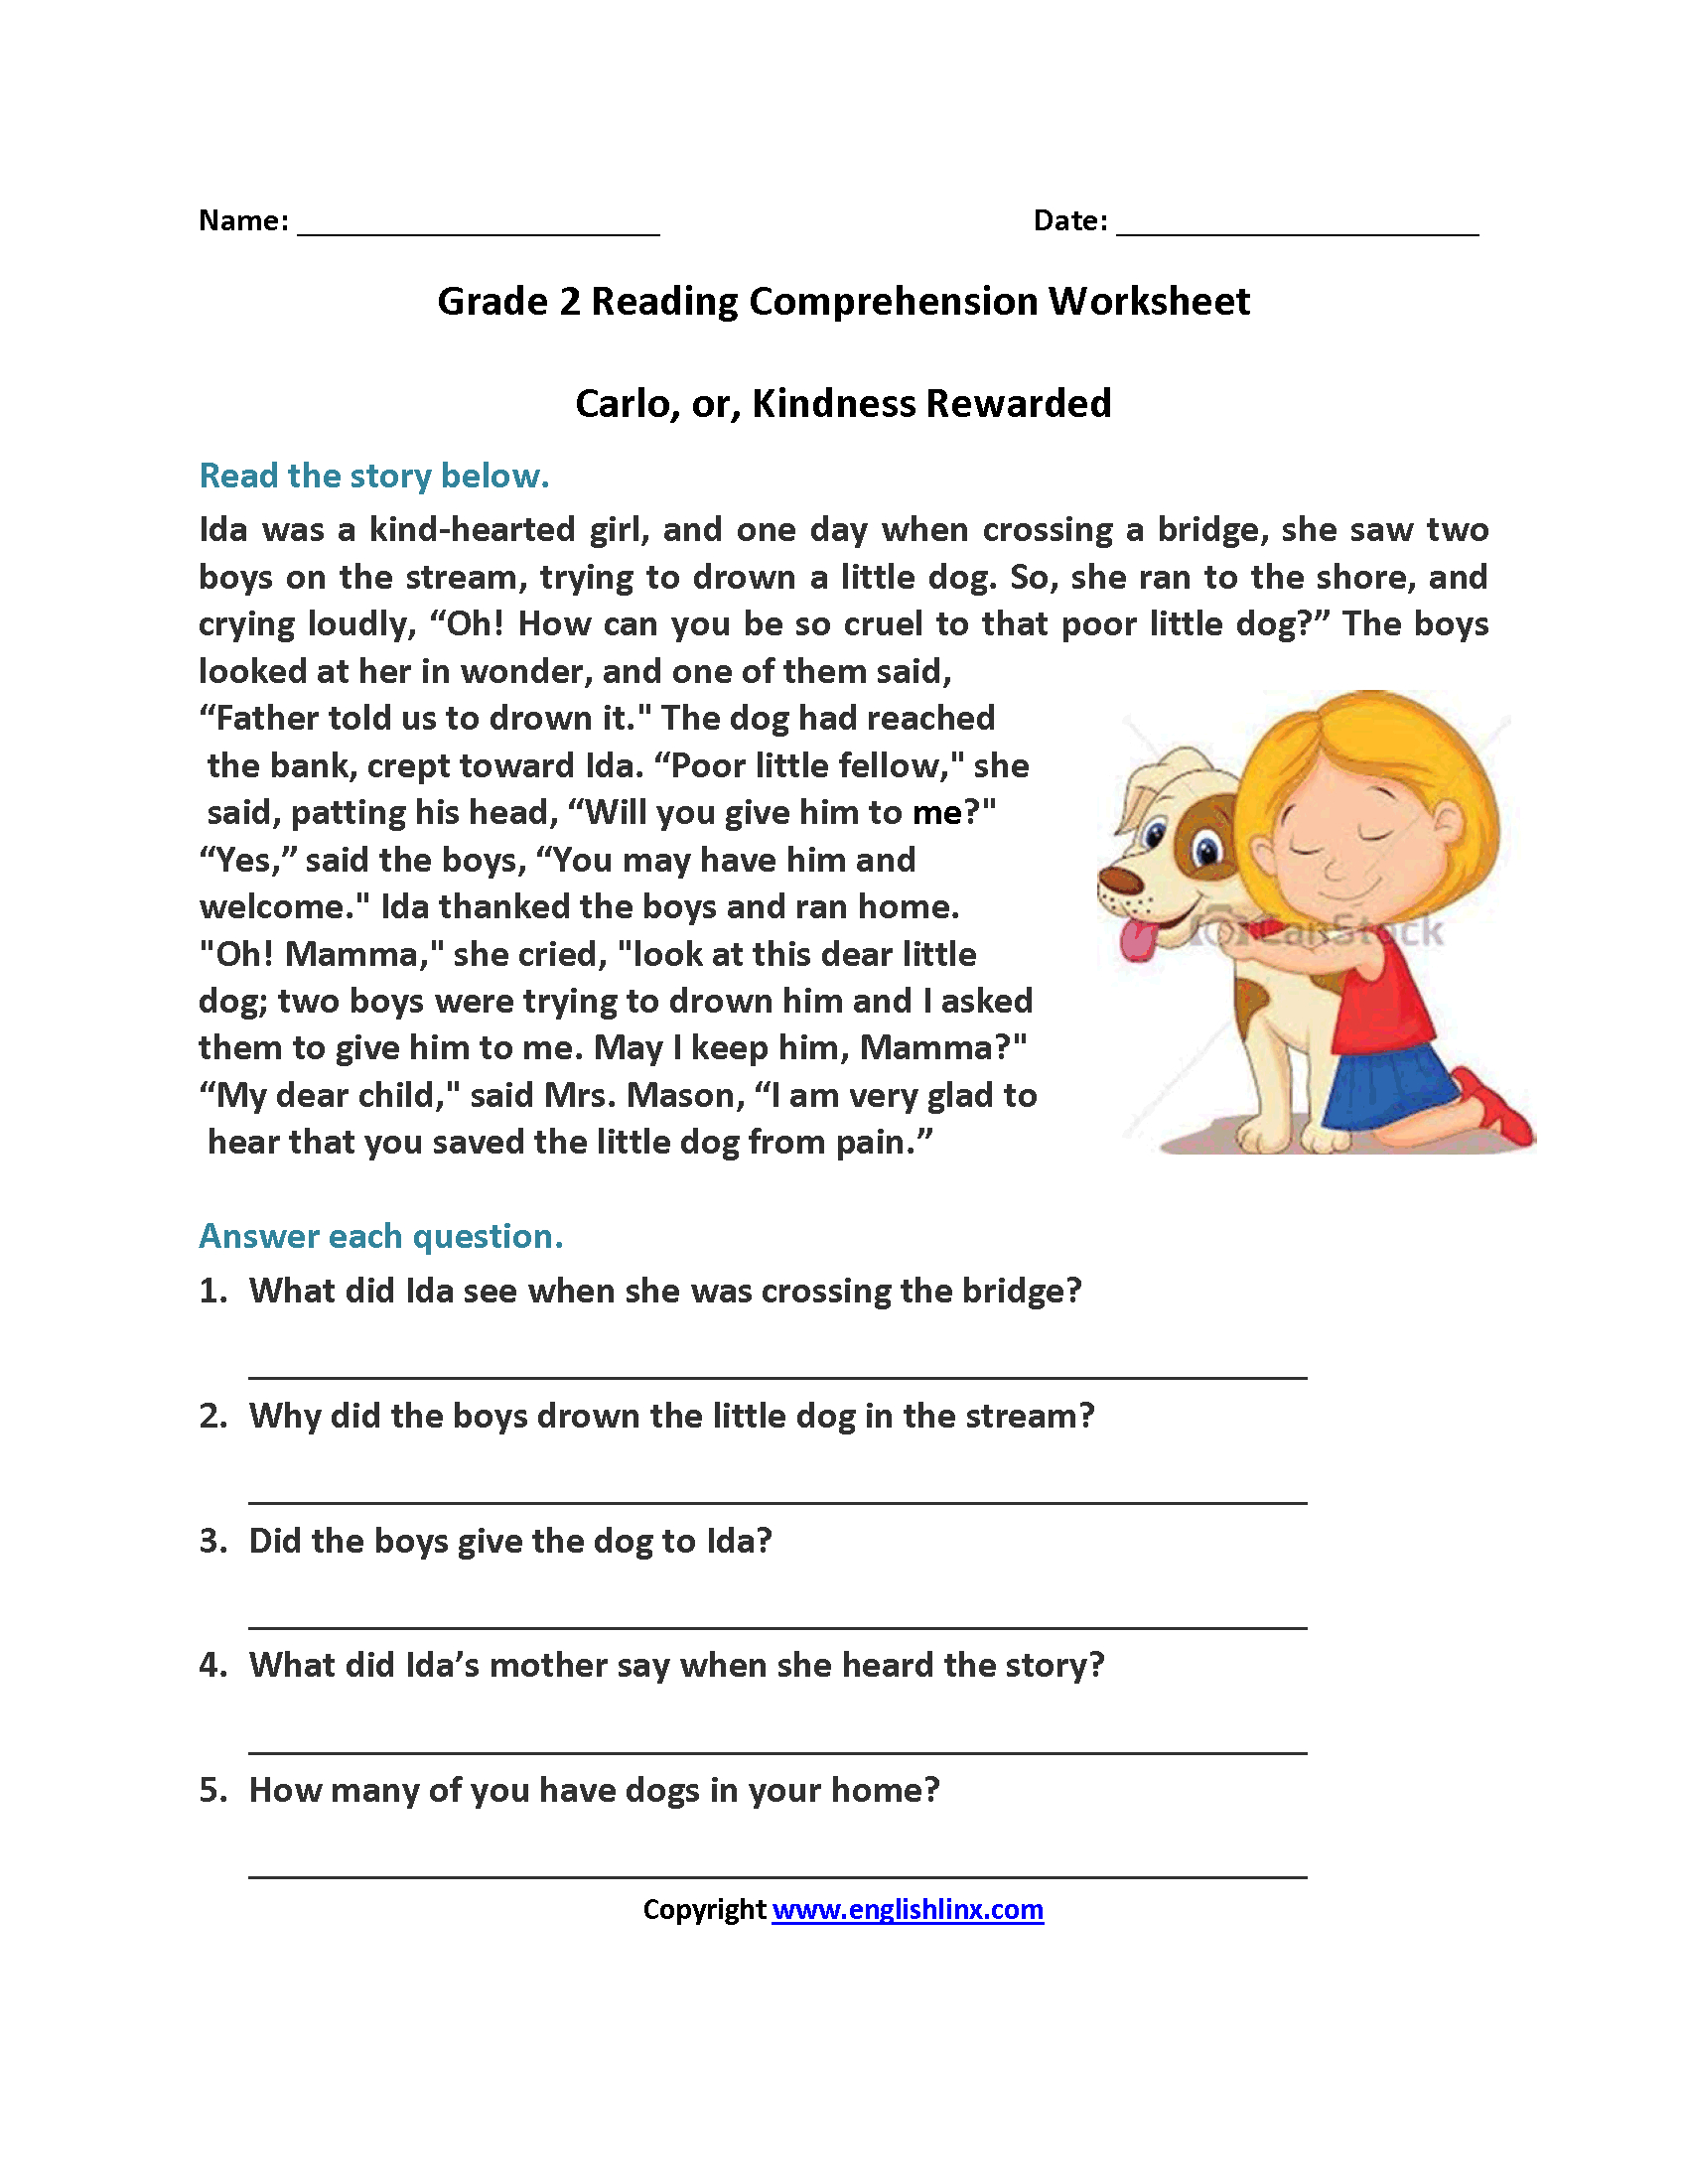 Carlo Or Kindness Rewarded Second Grade Reading Worksheets | Reading - Free Printable Short Stories For 2Nd Graders